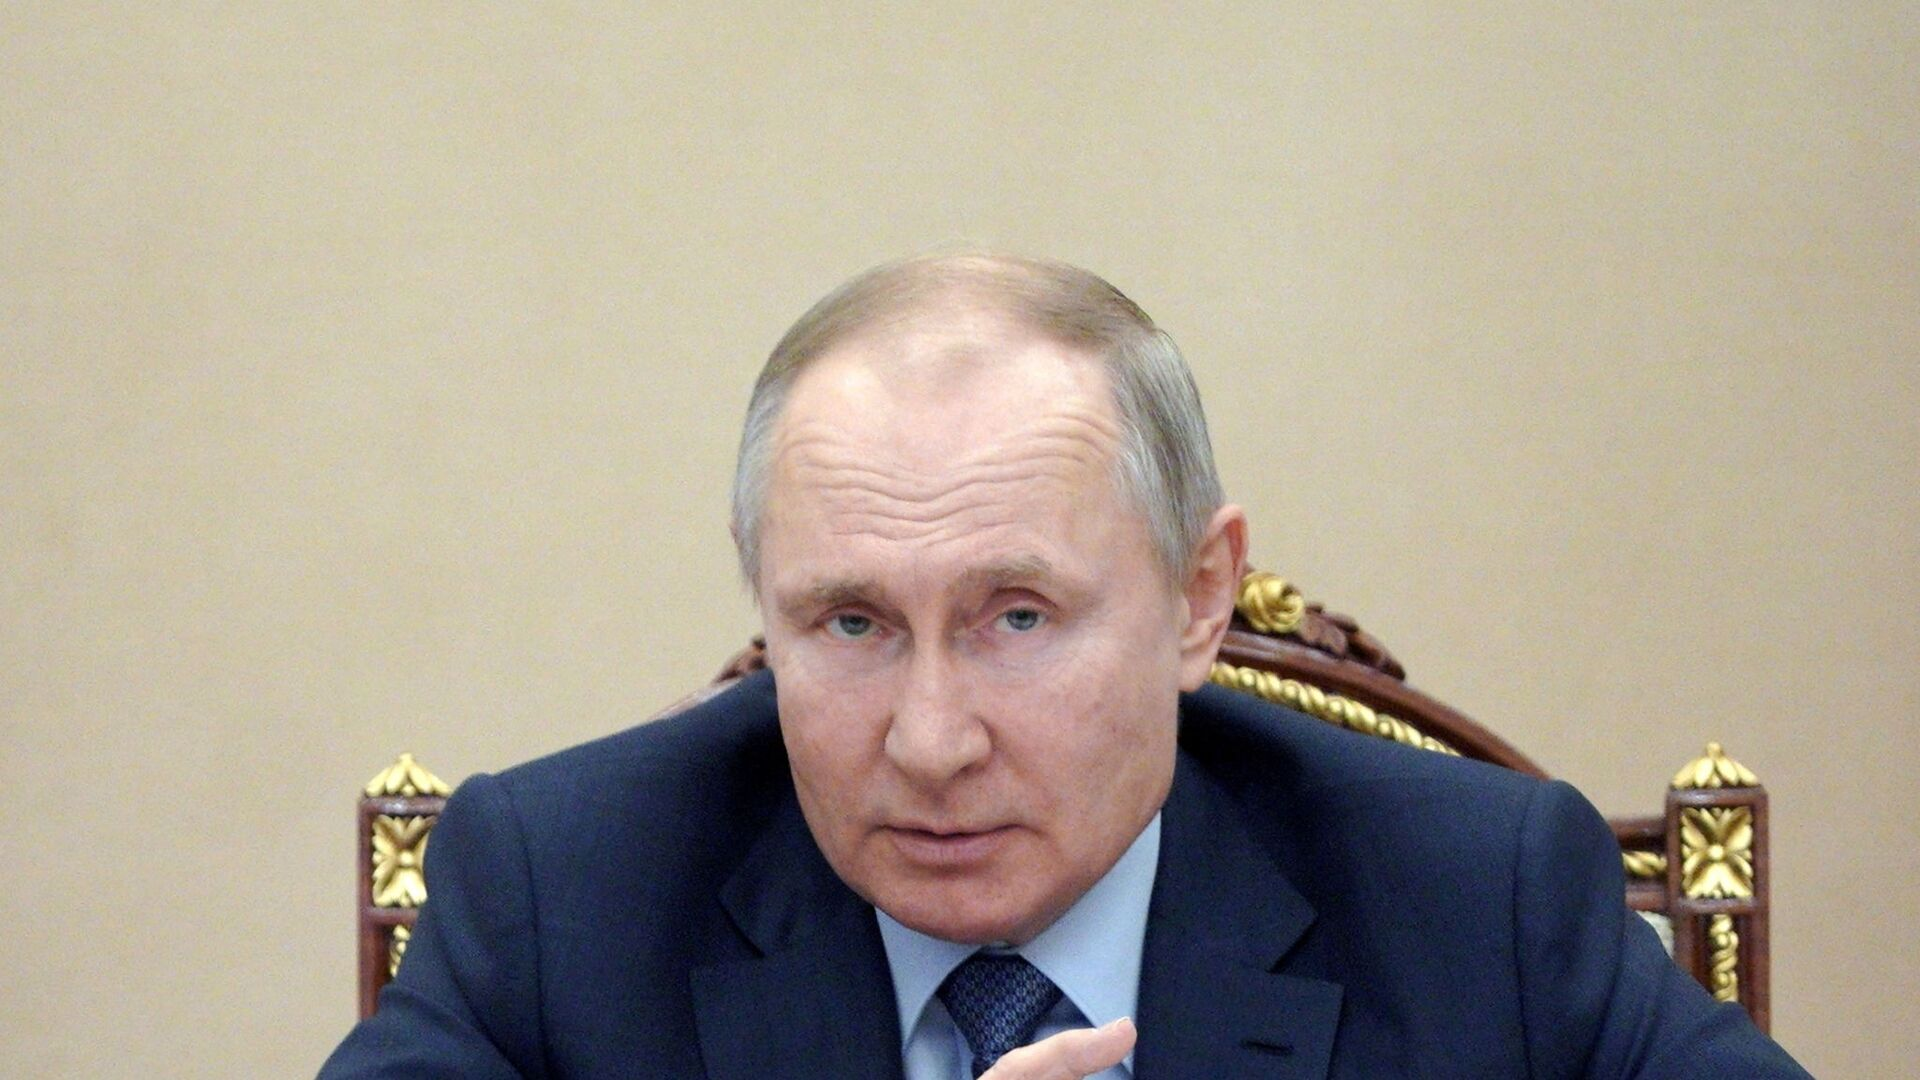 Russian President Vladimir Putin attends a meeting with government members via a video link in Moscow, Russia March 10, 2021 - Sputnik International, 1920, 16.09.2021